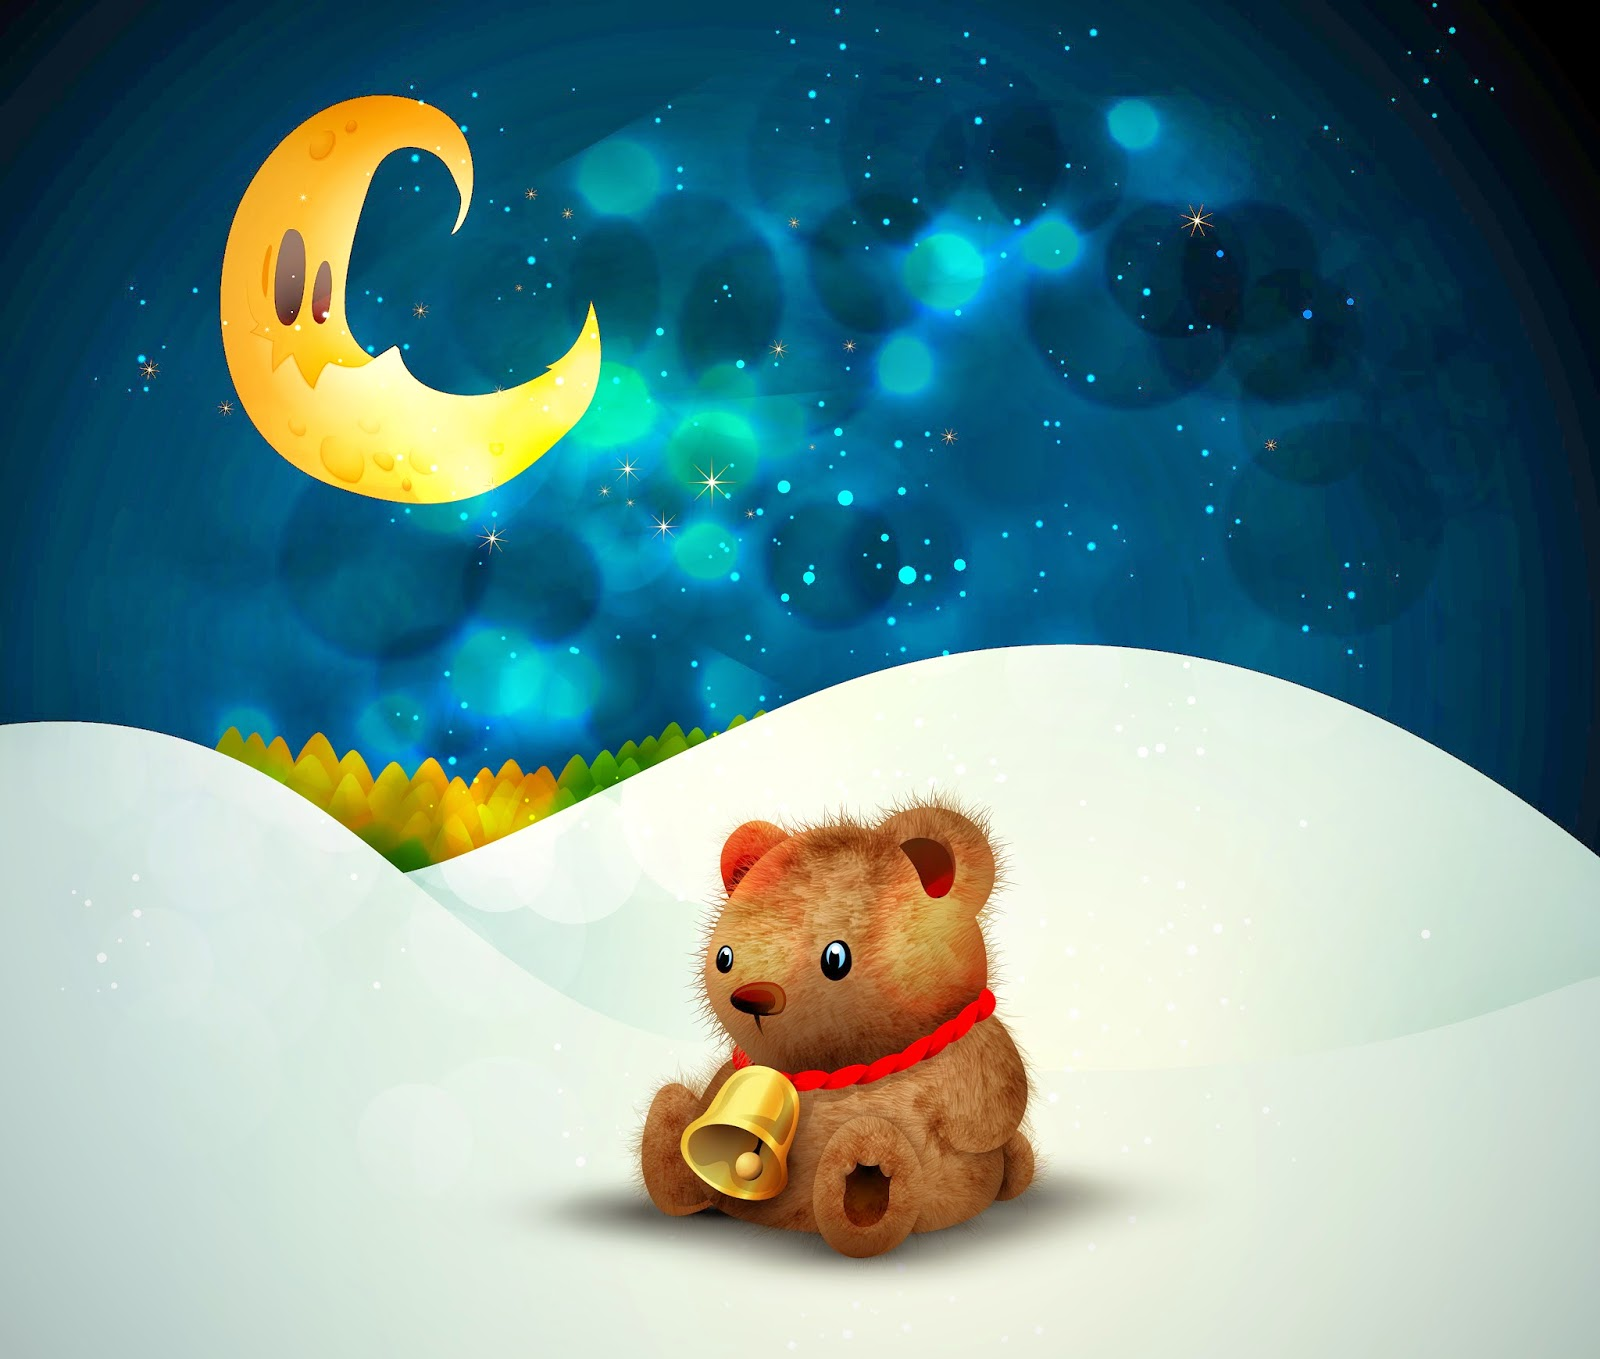 cute-little-teddy-bear-christmas-snow-moon-night-stars-image-x-wallpaper-wp3804277